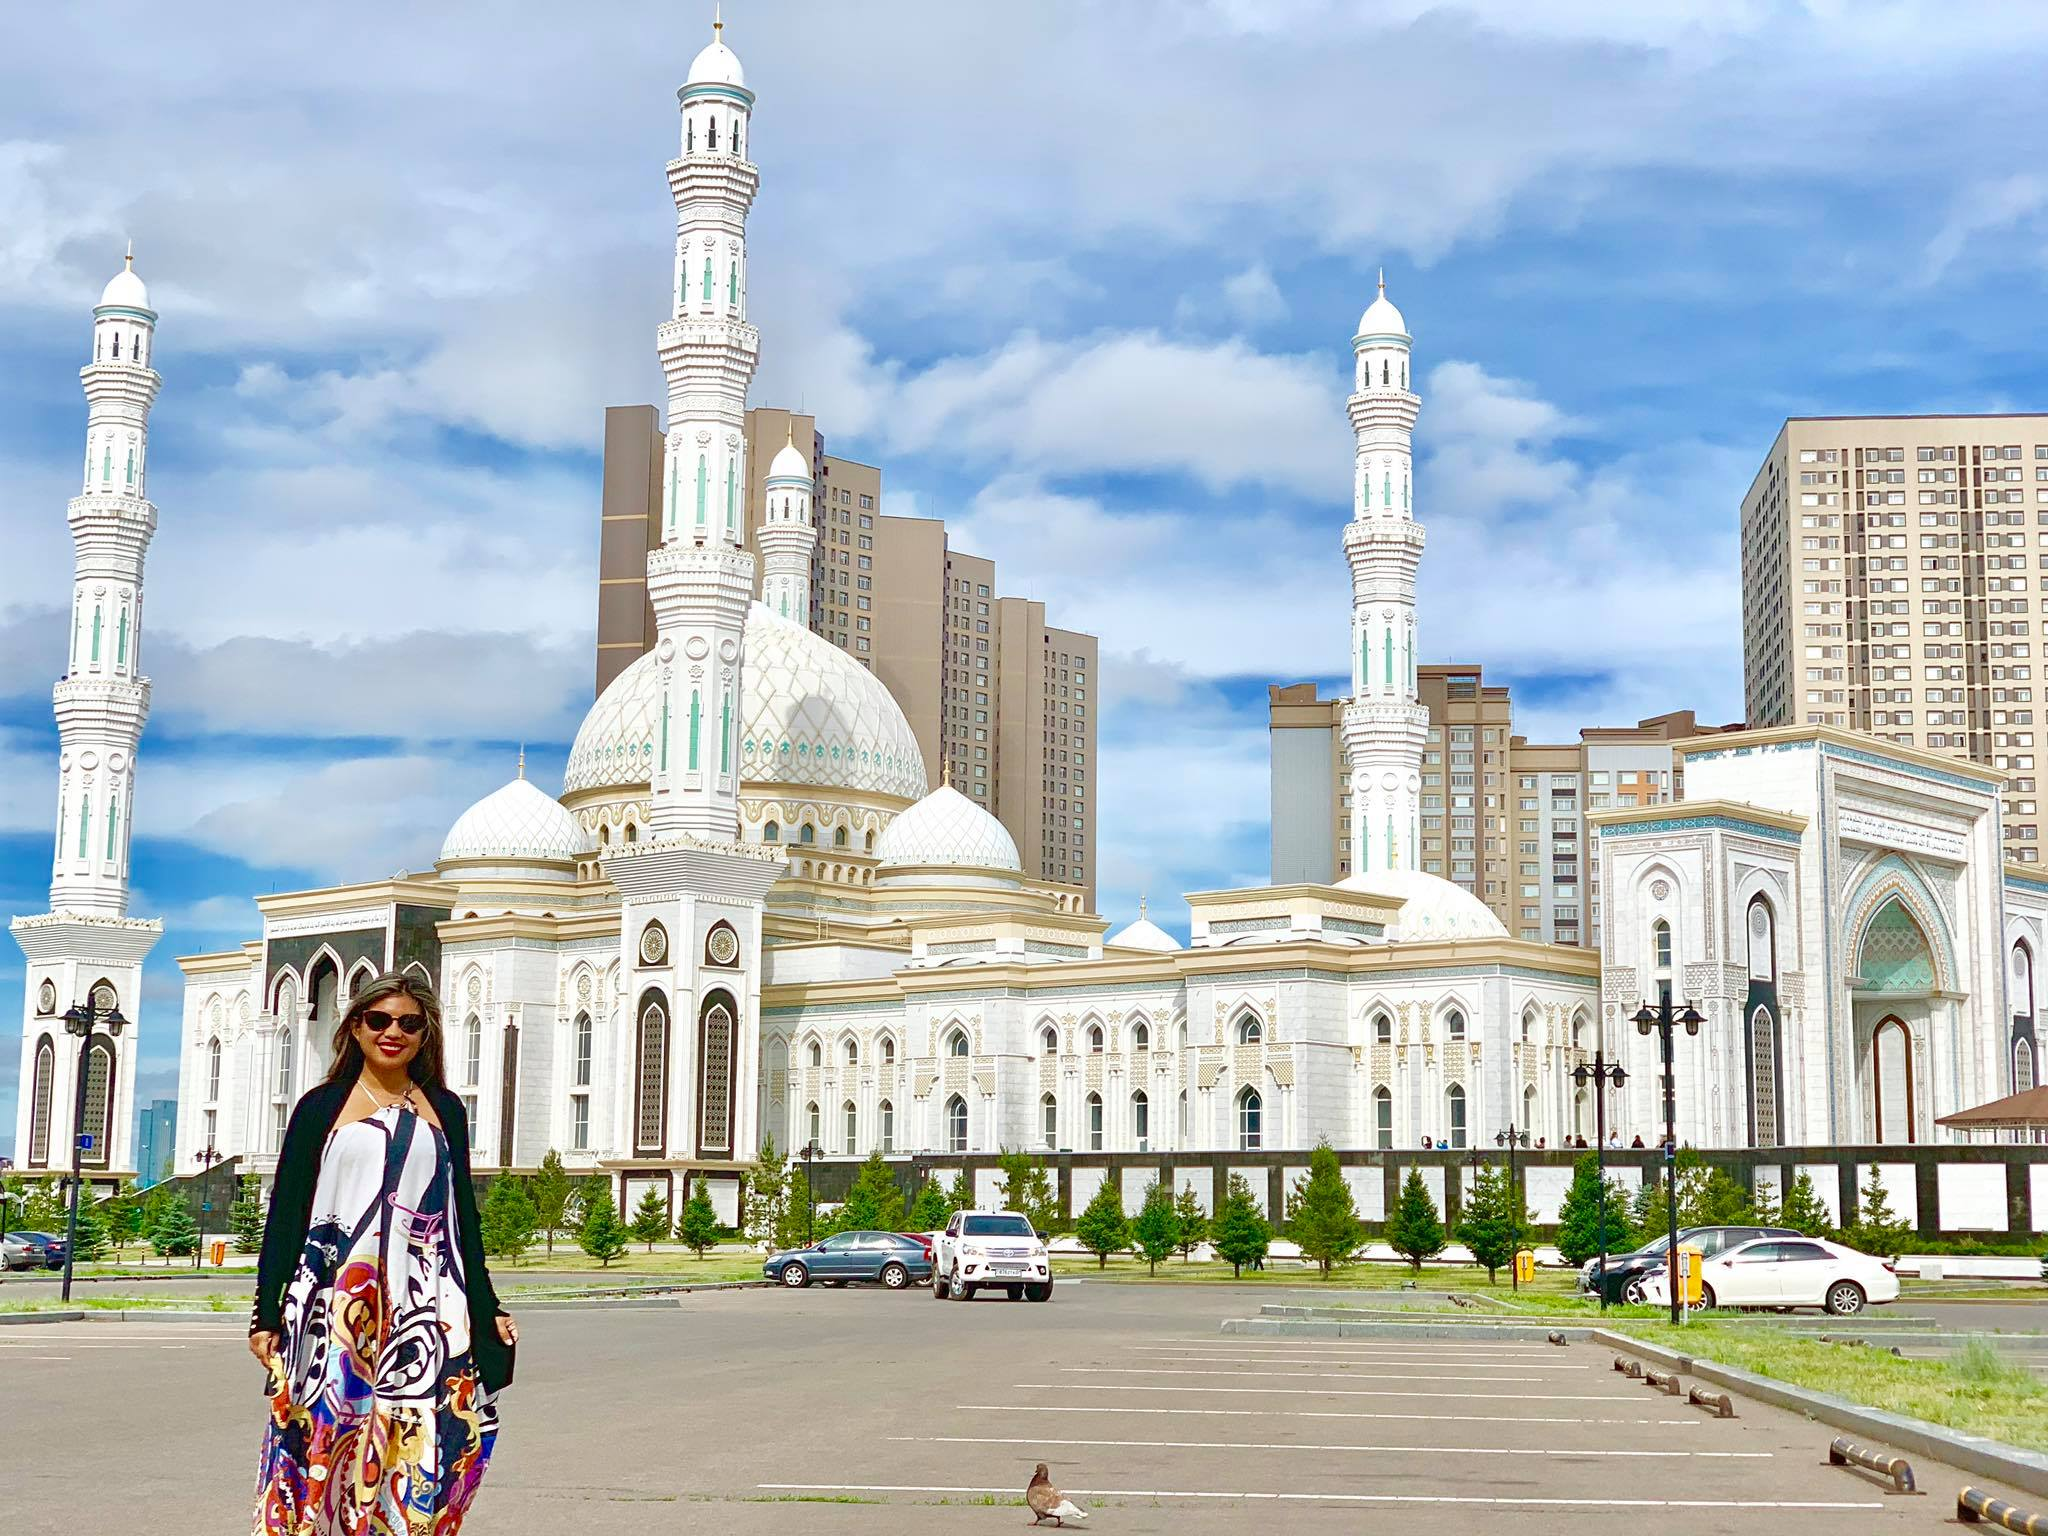 Kach Solo Travels in 2019 Nursultan  Astana - the City of the Future18.jpg